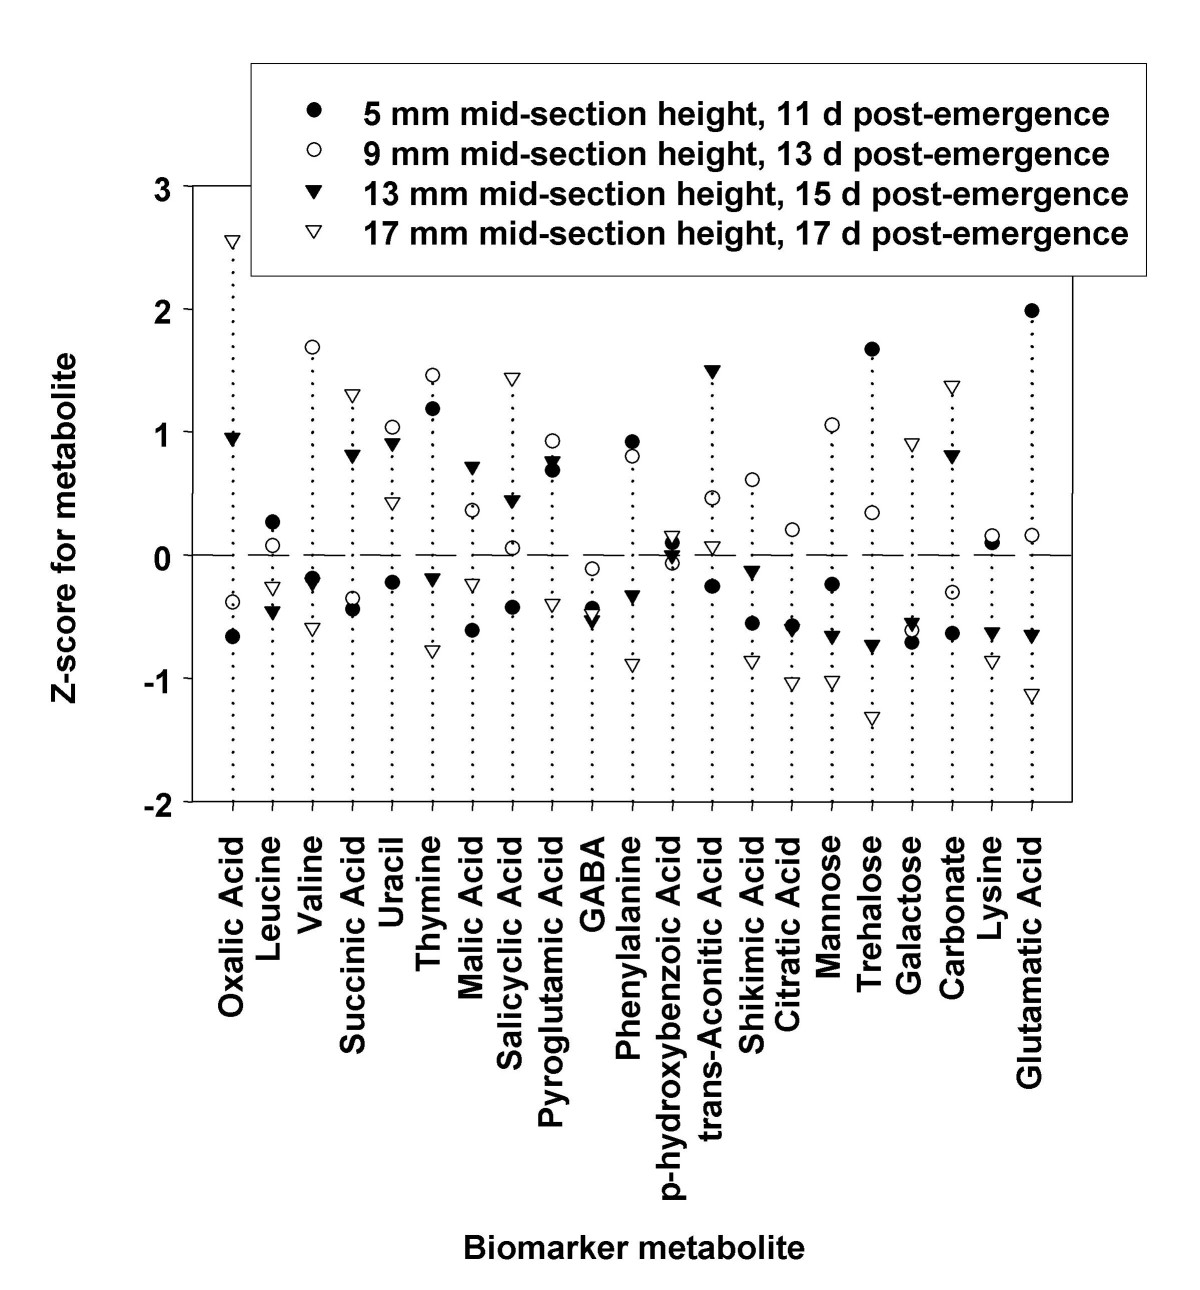 https://static-content.springer.com/image/art%3A10.1186%2F1471-2229-5-8/MediaObjects/12870_2004_Article_53_Fig3_HTML.jpg